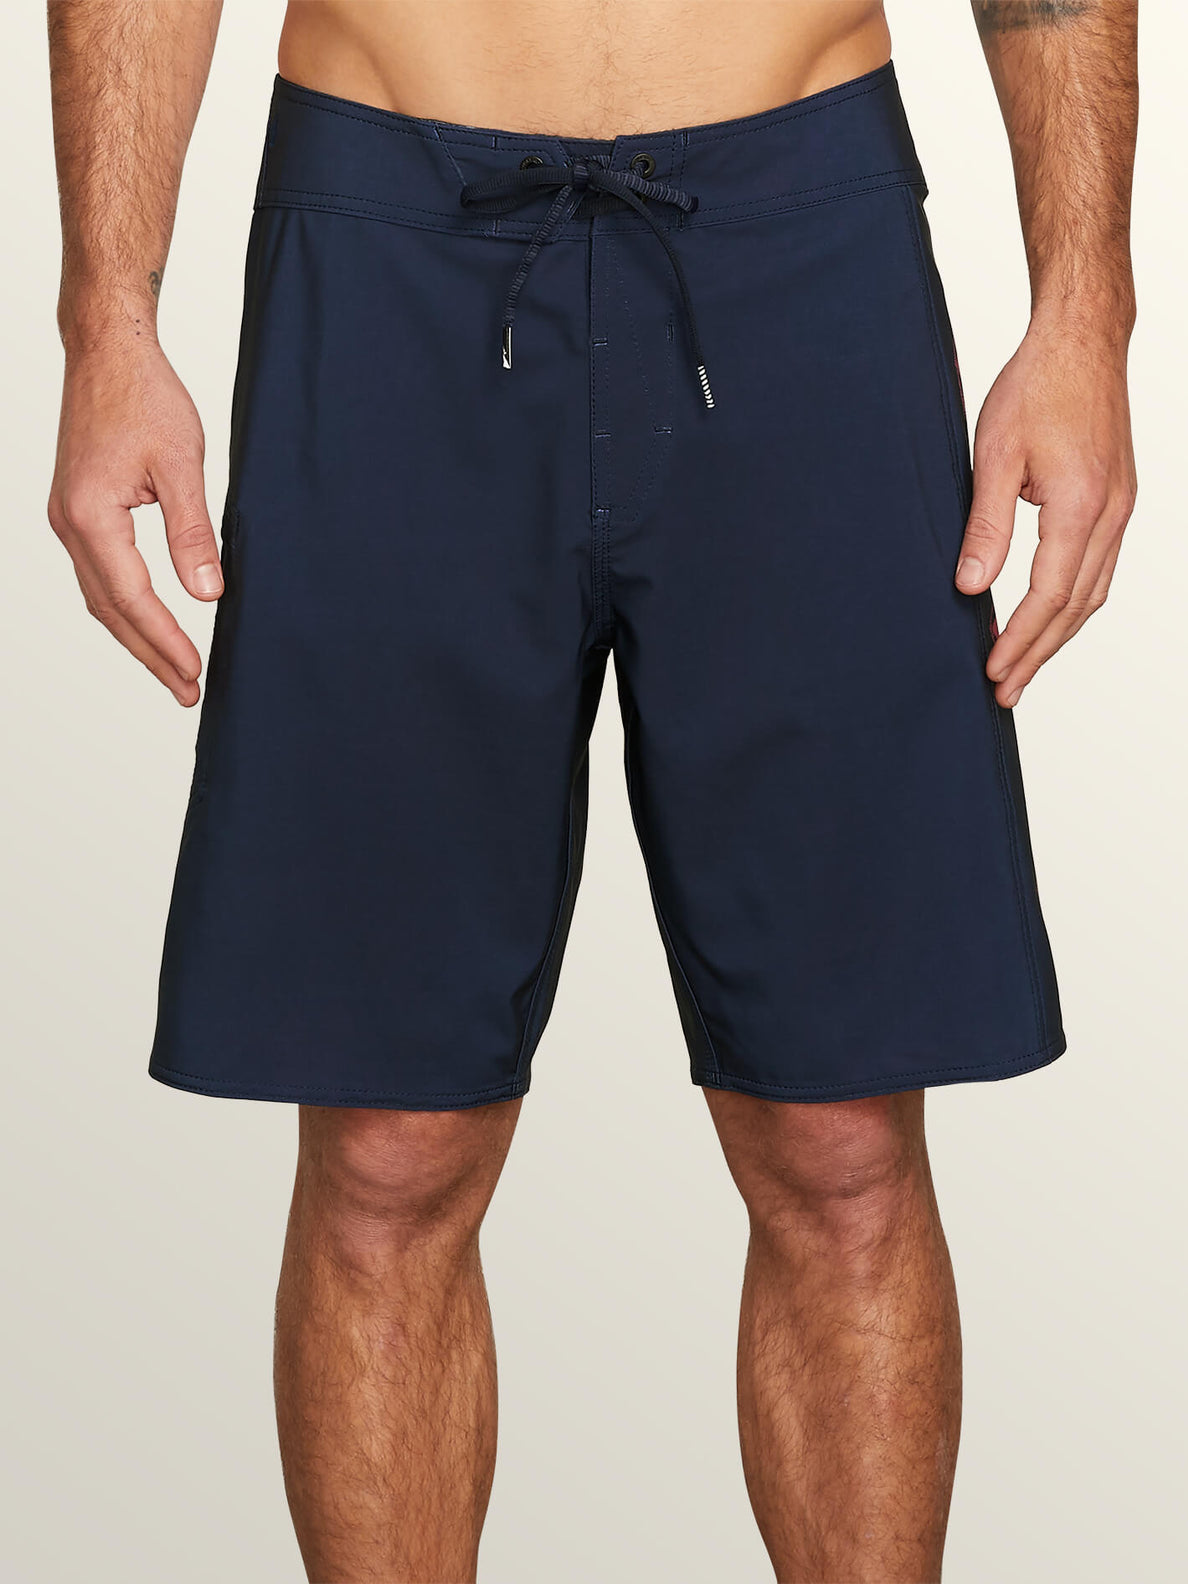 Deadly Stones Mod Boardshorts In Melindigo, Front View